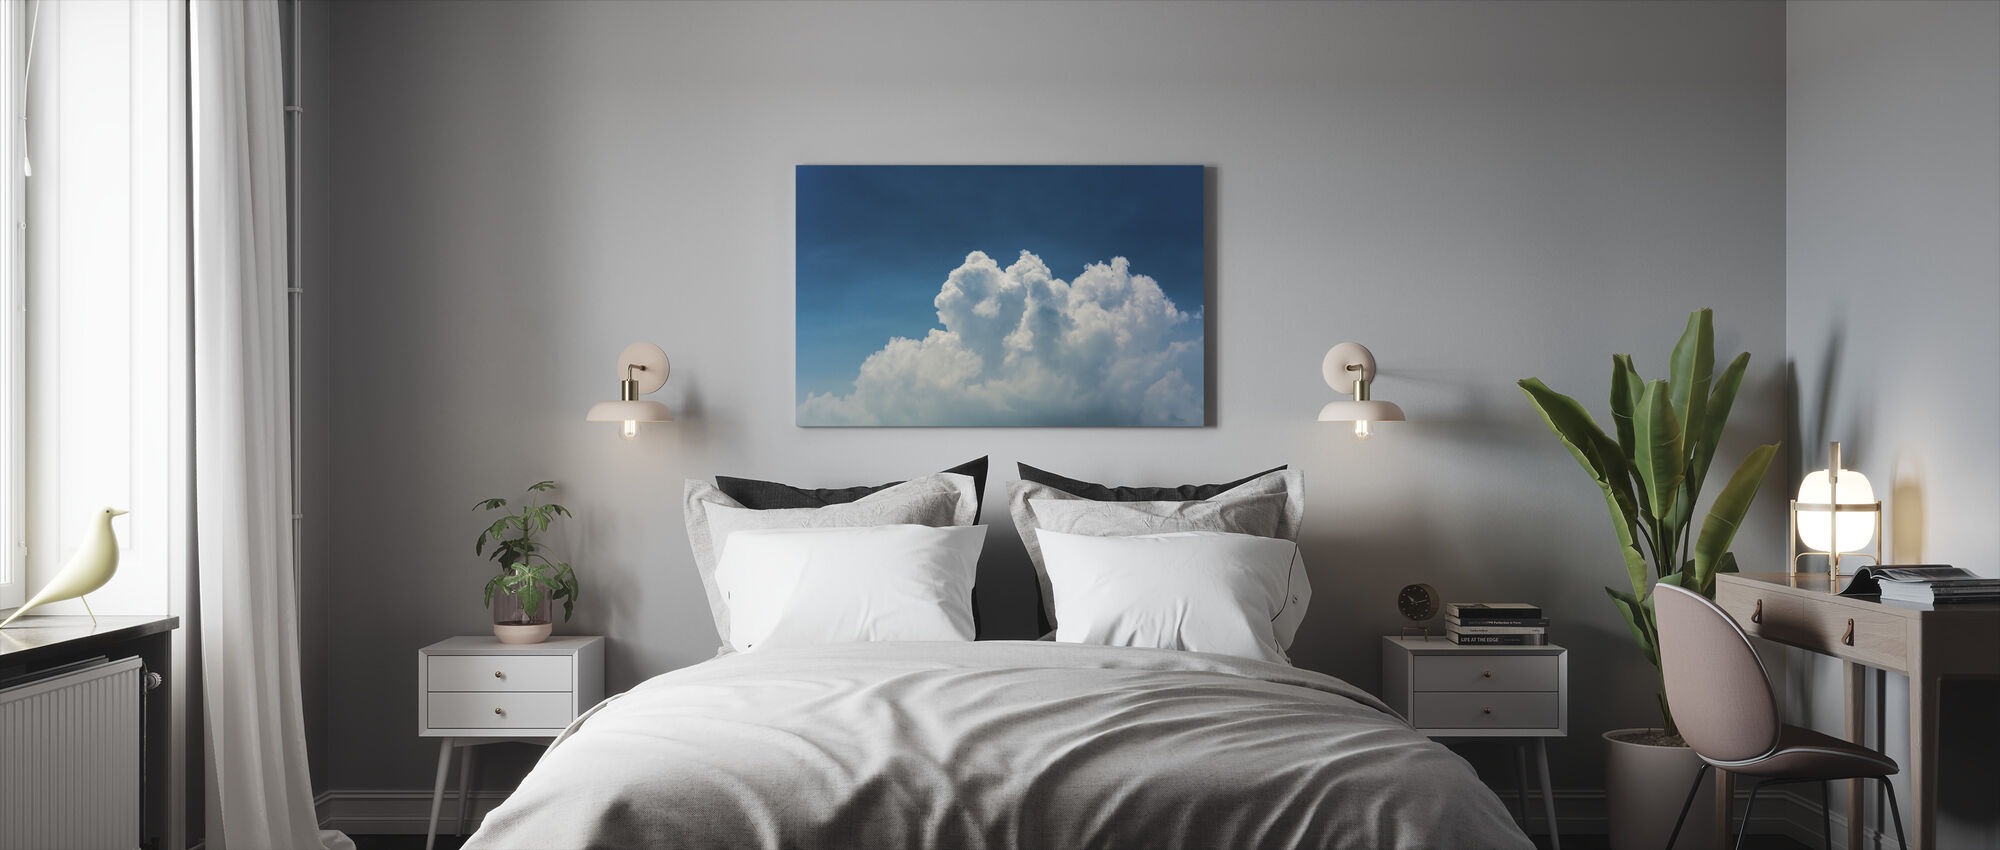 Blue Sky and Clouds - Canvas print - Bedroom